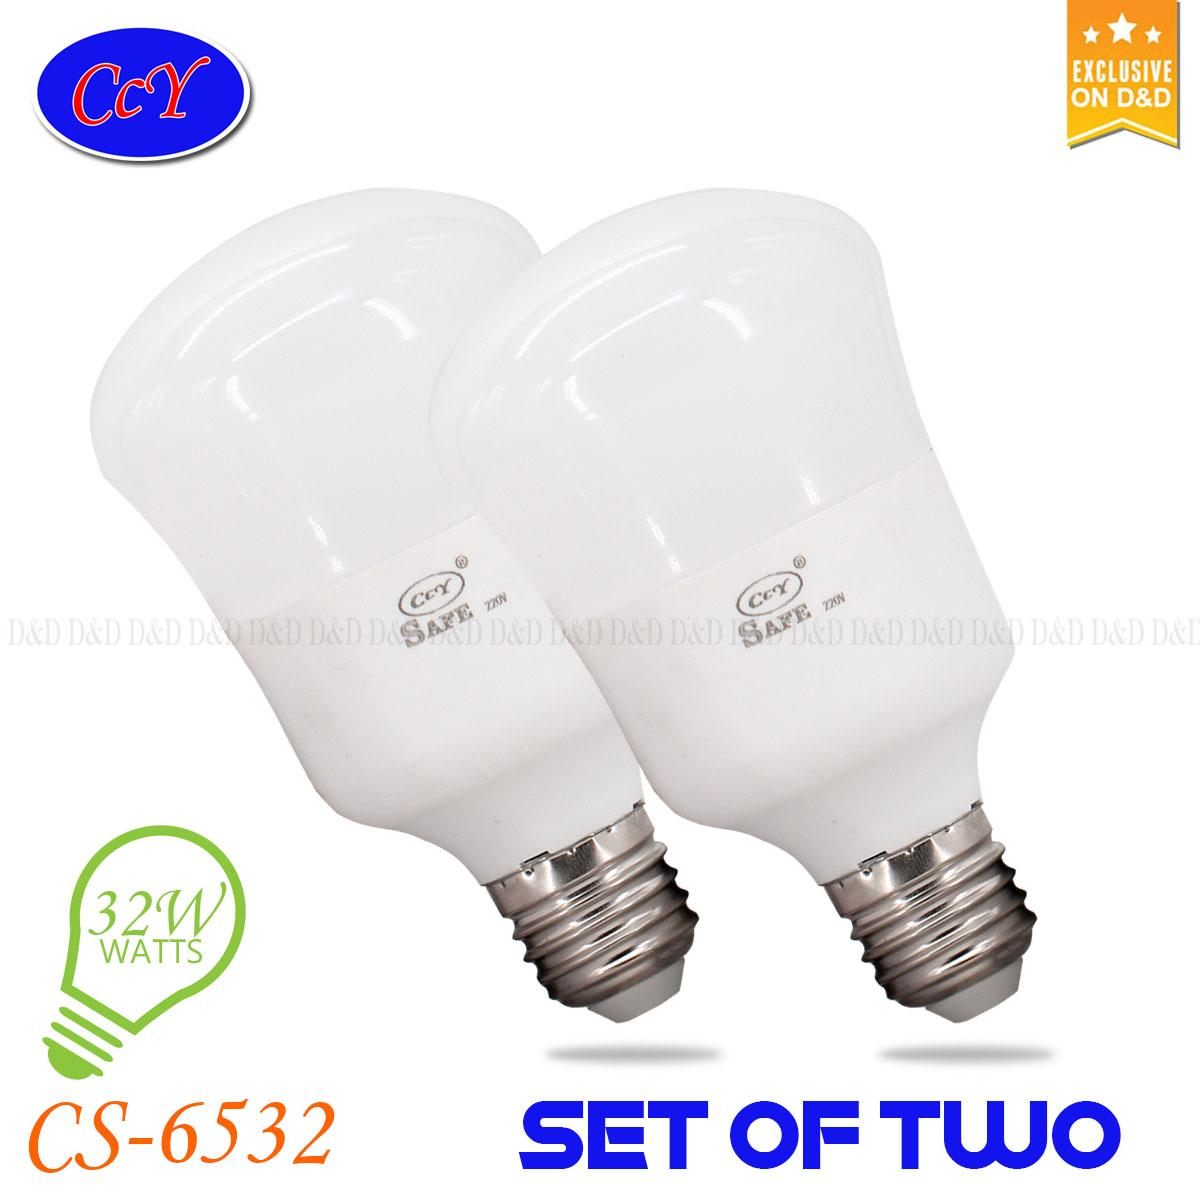 Light Bulbs For Sale Led Prices Brands Review In Wiring A Double Bulb Lamp Ddccy Safe 32 Watts Set Of Two Energy Savinglong Durationhigh